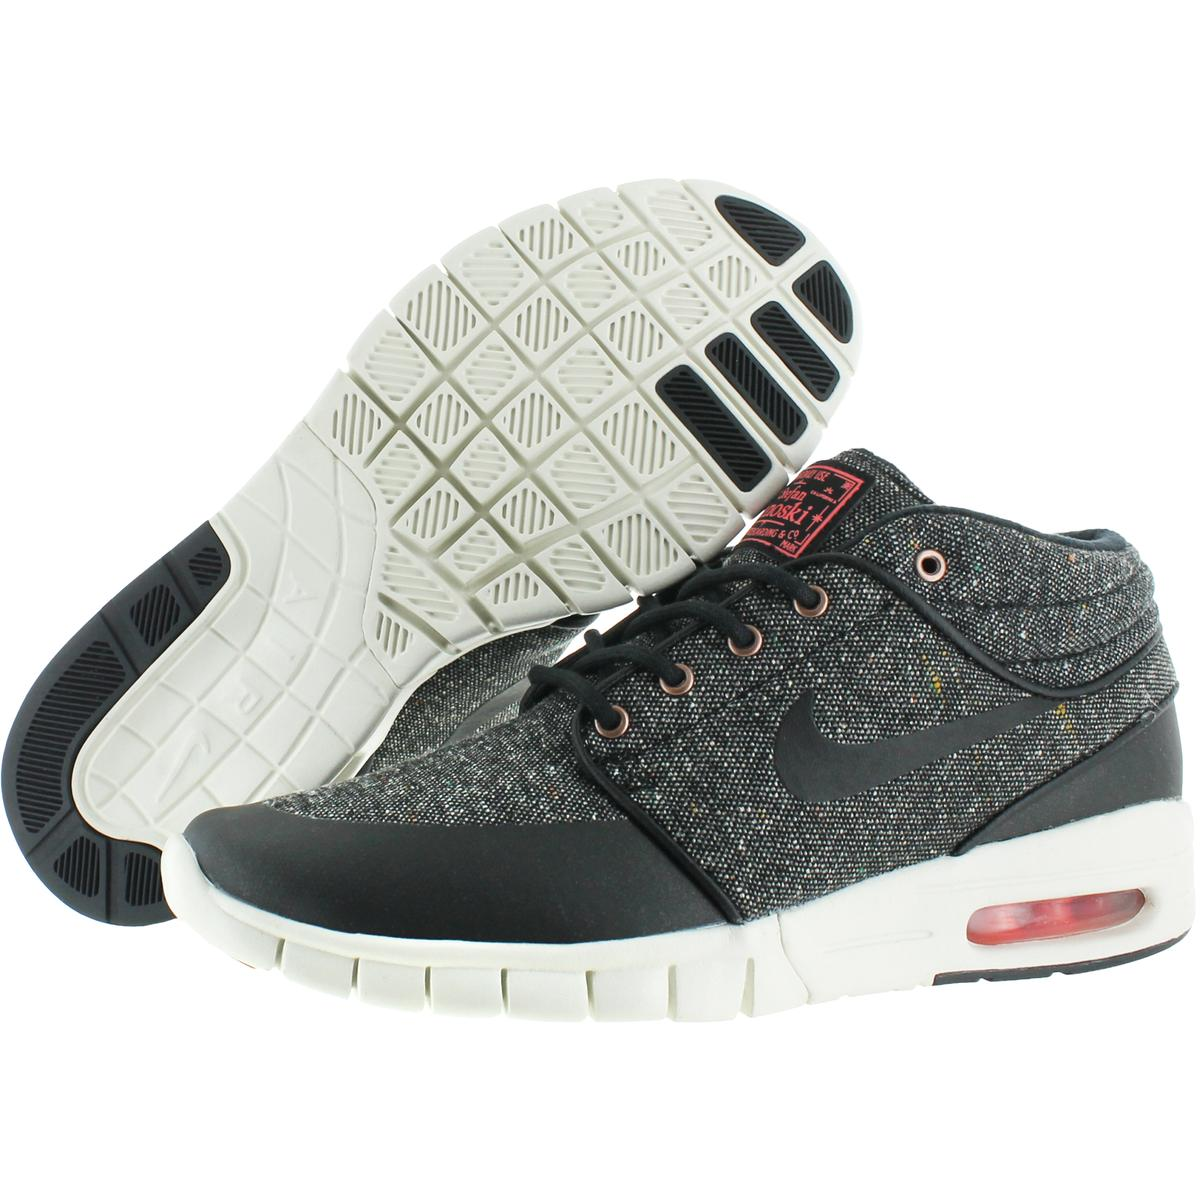 Details about Nike Mens Stefan Janoski Max Mid Black Skate Shoes 6.5 Medium  (B 0186e8595